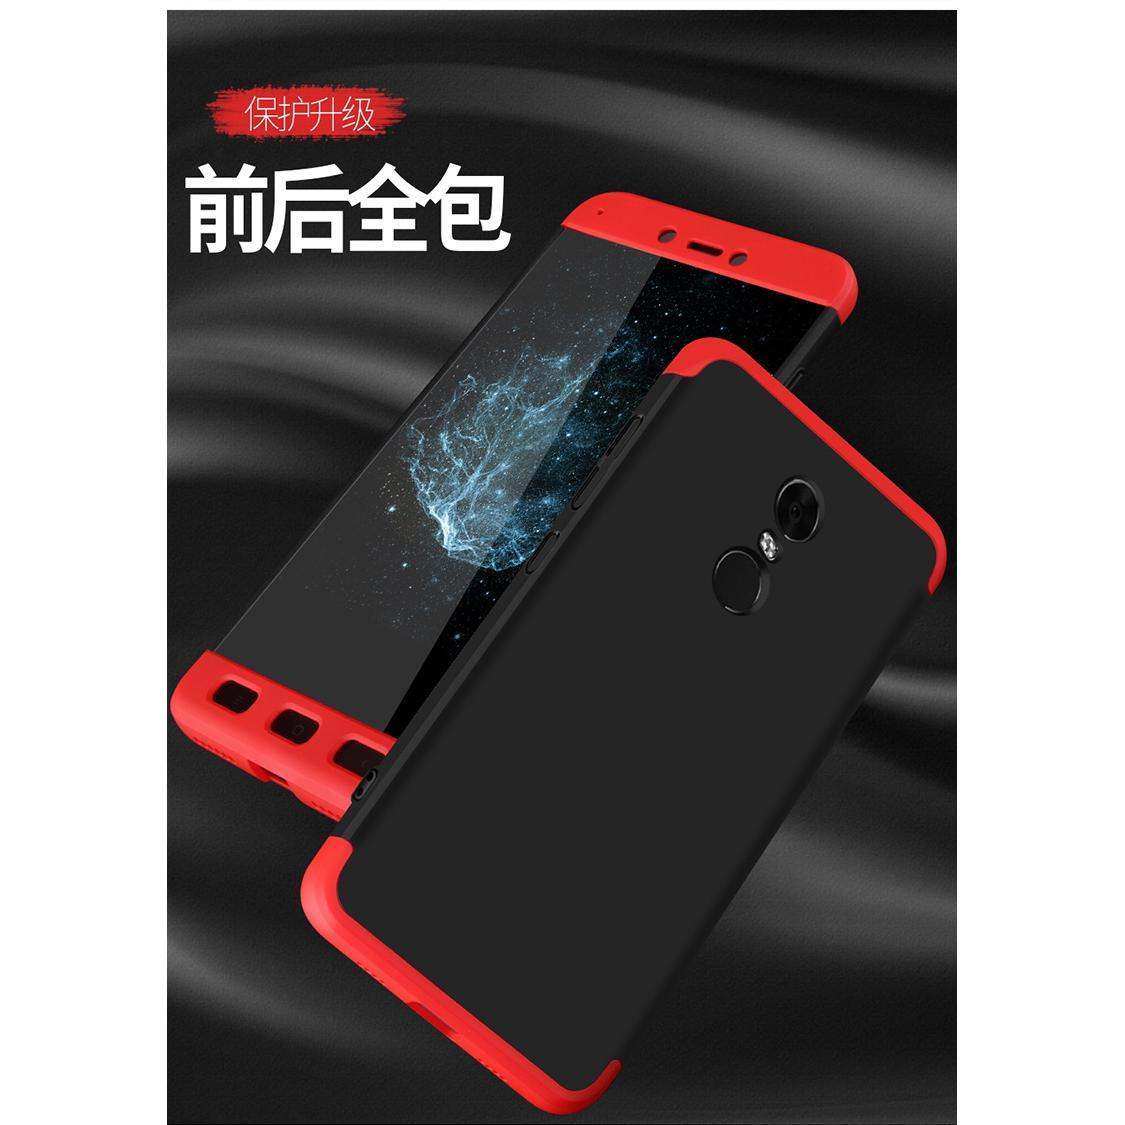 Fitur Case Hardcase 360 Full Protection Xiaomi Redmi Note 4x Dan Ume Tempered Glass 4